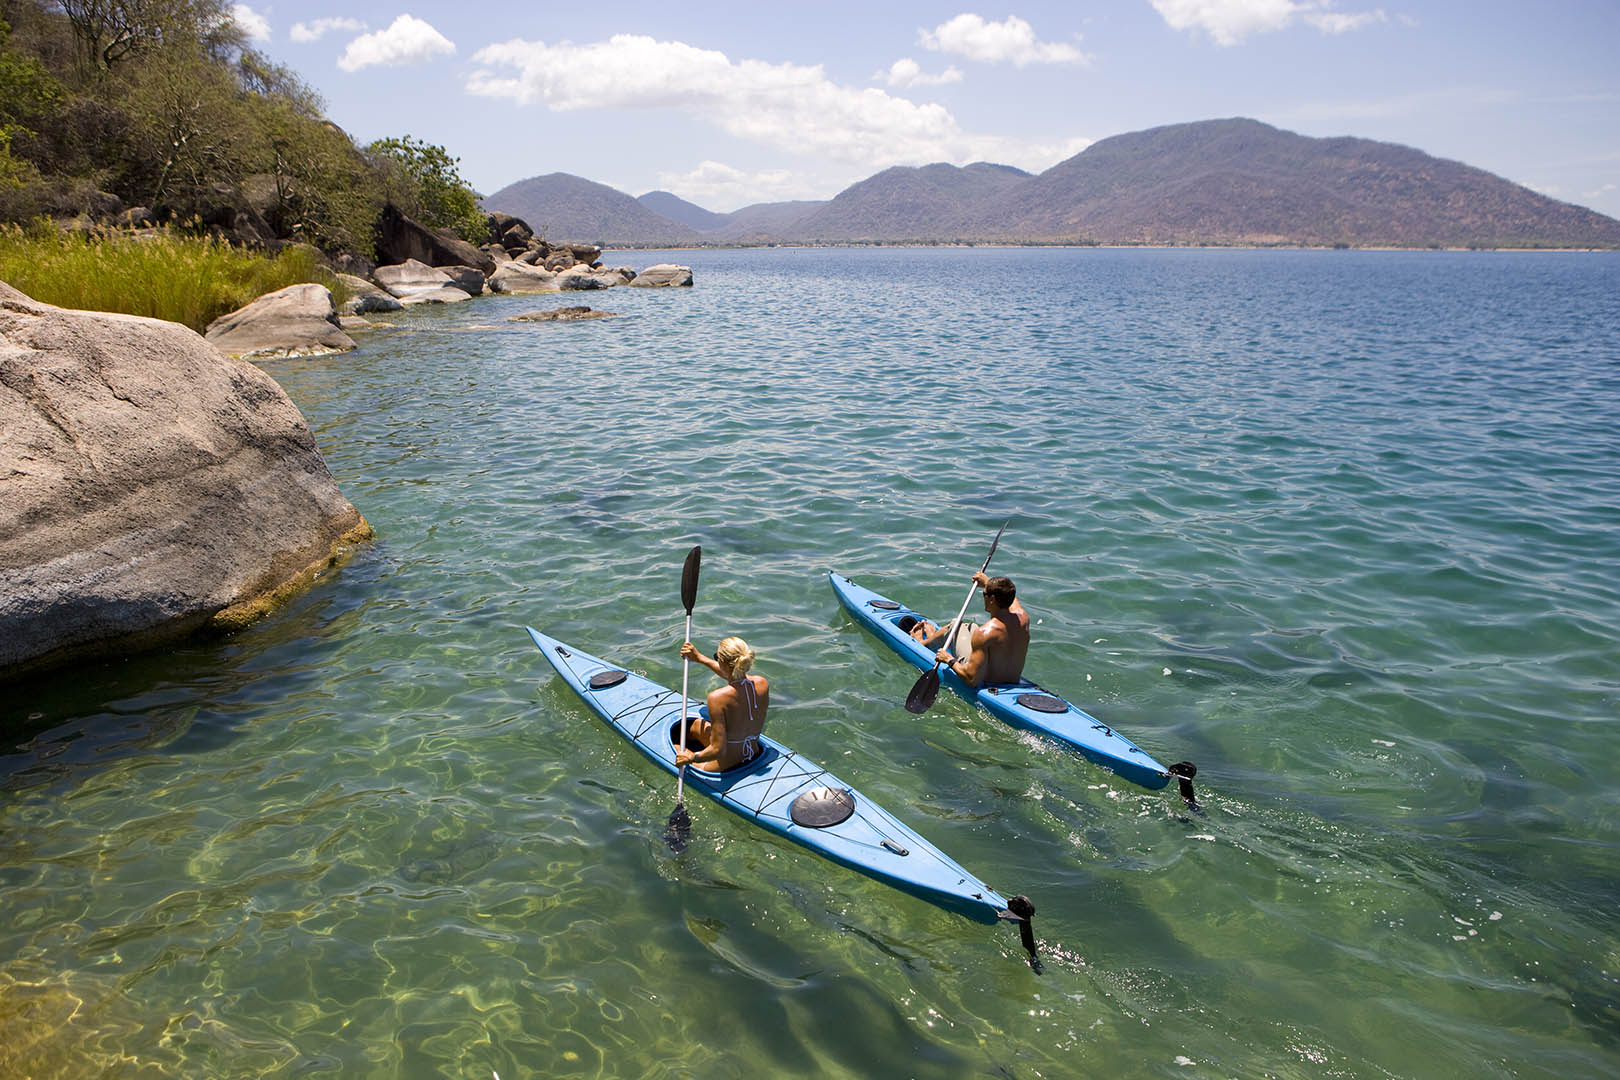 classic-adventure-zambia-in-style-safari-packages-tours-luxury-mumbo-island-lake-malawi-kayak